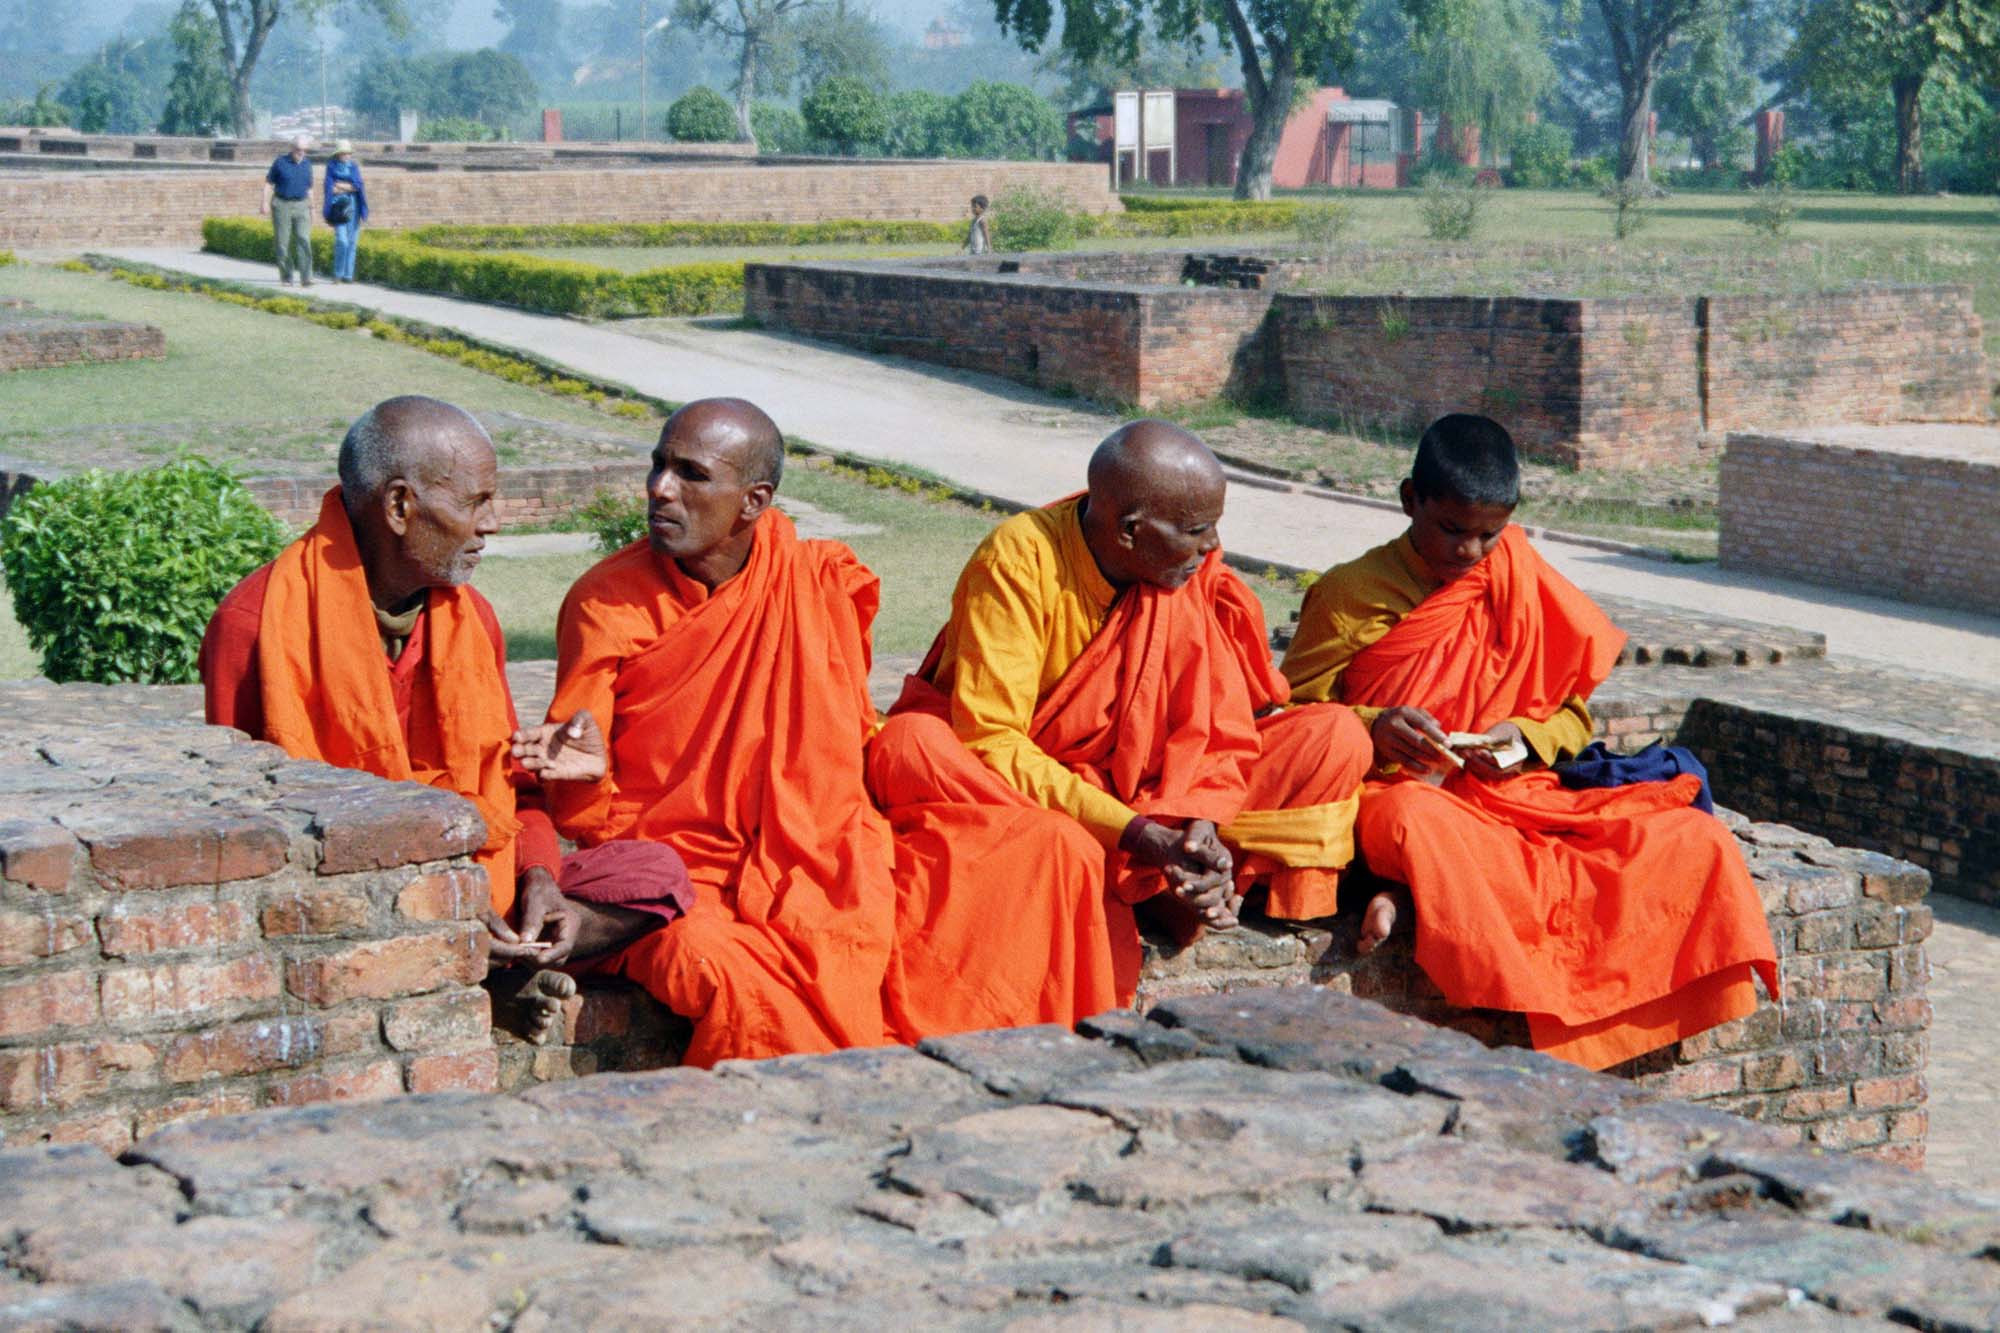 Monks and novices in conversation, Ruins of the ancient Buddhist monastery at Shravasti, India.